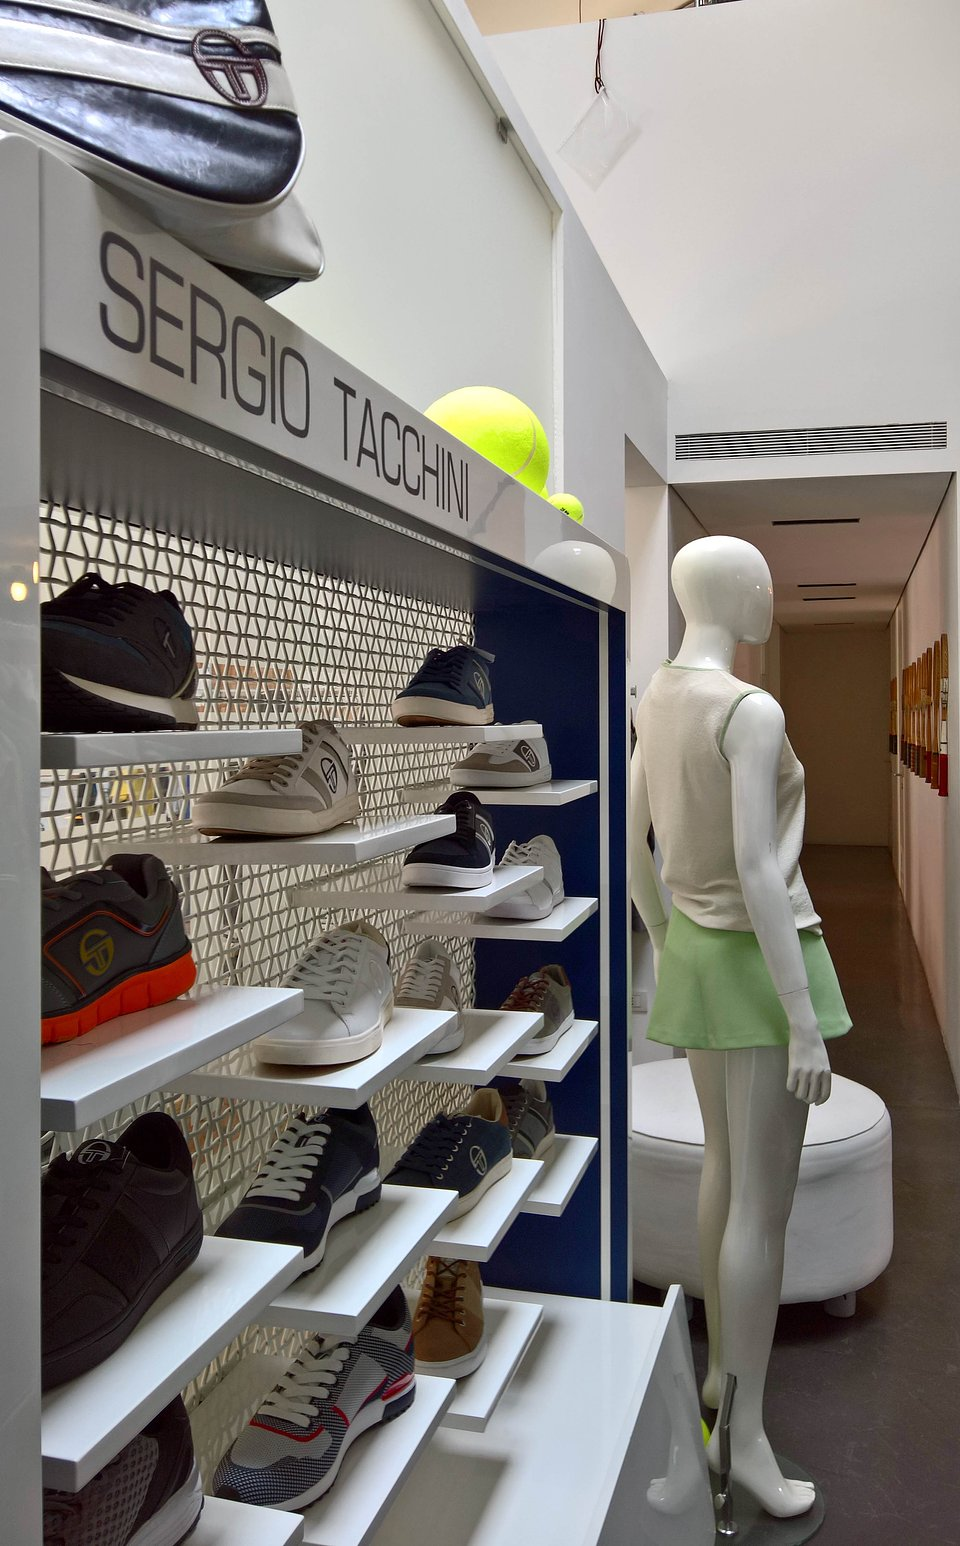 Sergio Tacchini show room by nz.A Studio (18).jpg